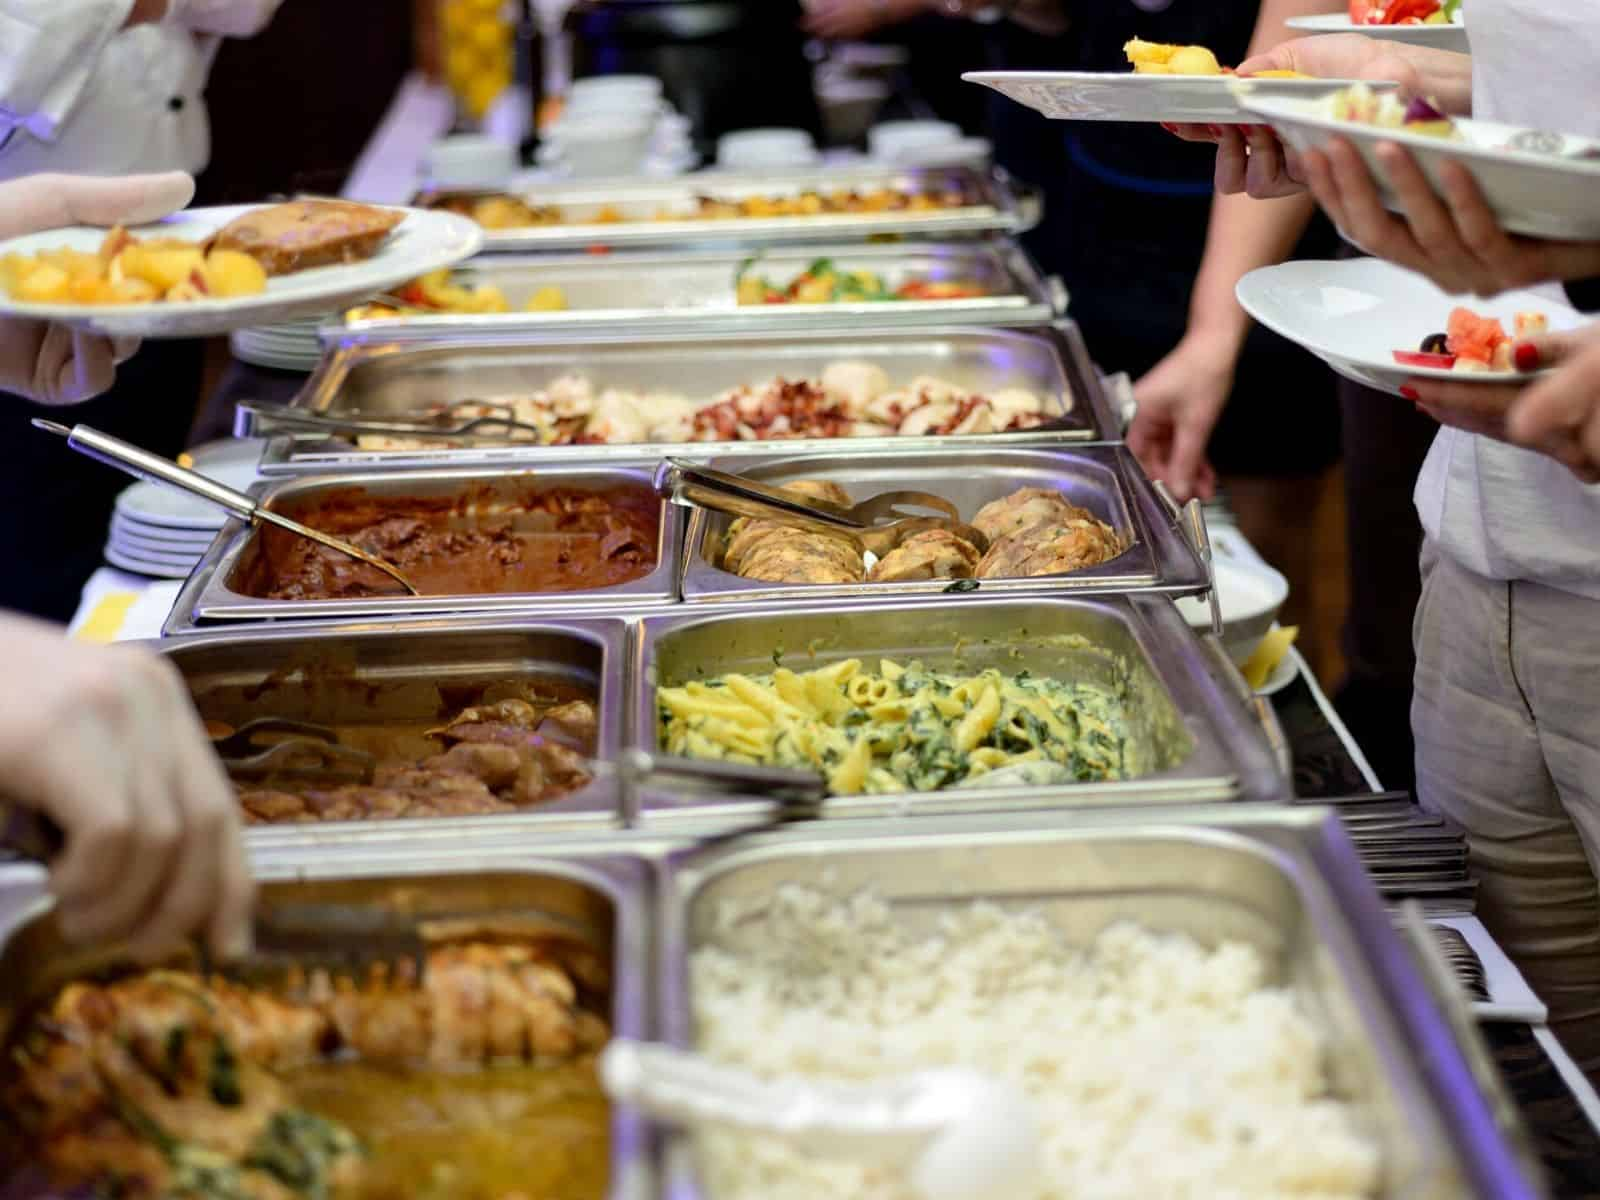 chafing dishes set up on a buffet table with warm food and people serving themselves